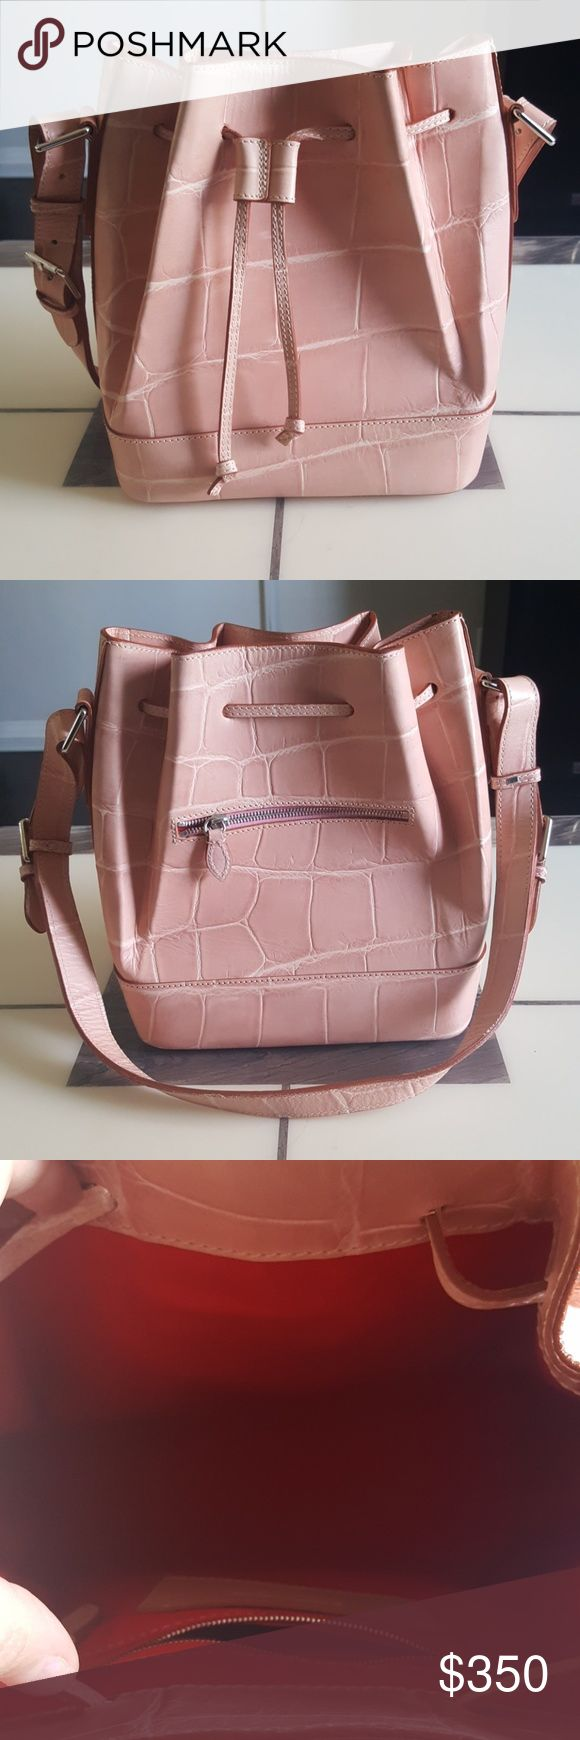 Rare Dooney and Bourke Pink Croco embossed handbag Brand new Dooney & Bourke Large Pink Croco embossed drawstring handbag. Beautiful, fits a lot, made in Italy - Leather. Make me a reasonable offer :) Dooney & Bourke Bags Crossbody Bags